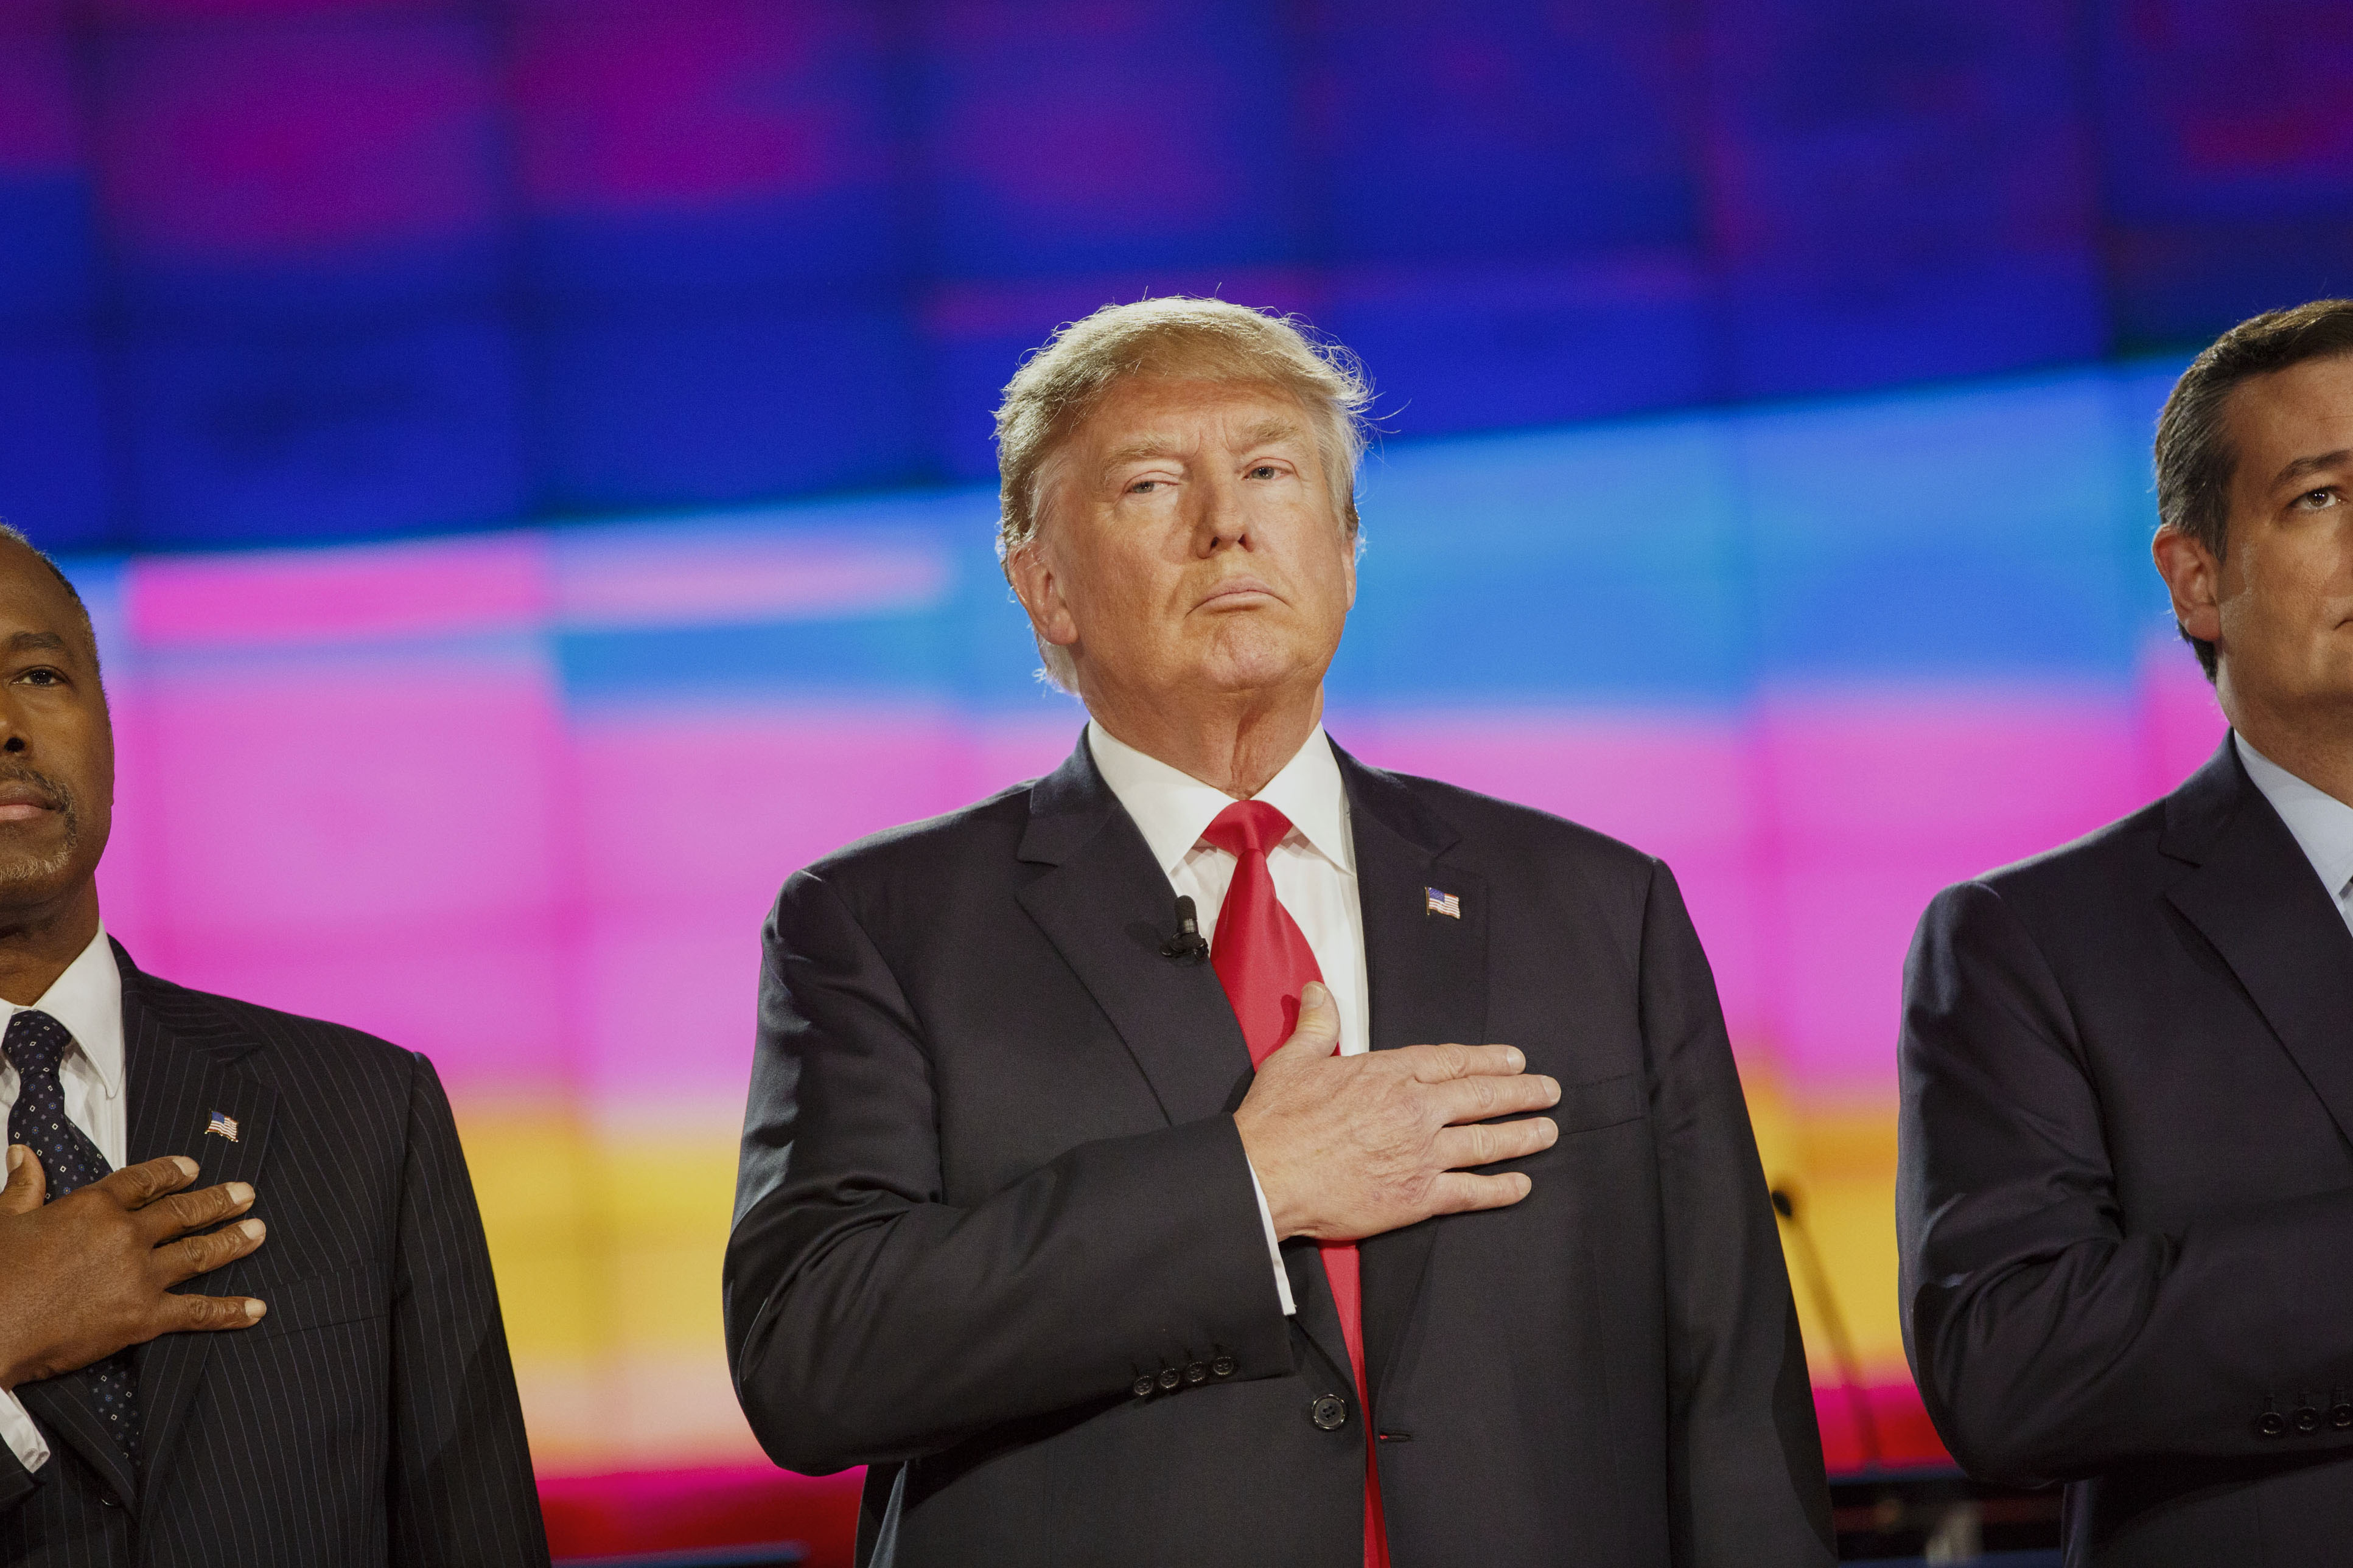 Donald Trump, president and chief executive of Trump Organization Inc. and 2016 Republican presidential candidate, center, stands between 2016 Republican presidential candidates Ben Carson, retired neurosurgeon, left, and Senator Ted Cruz, a Republican from Texas, on stage during the pledge of allegiance at the start of the Republican presidential candidate debate at The Venetian in Las Vegas, Nevada, U.S., on Tuesday, Dec. 15, 2015.